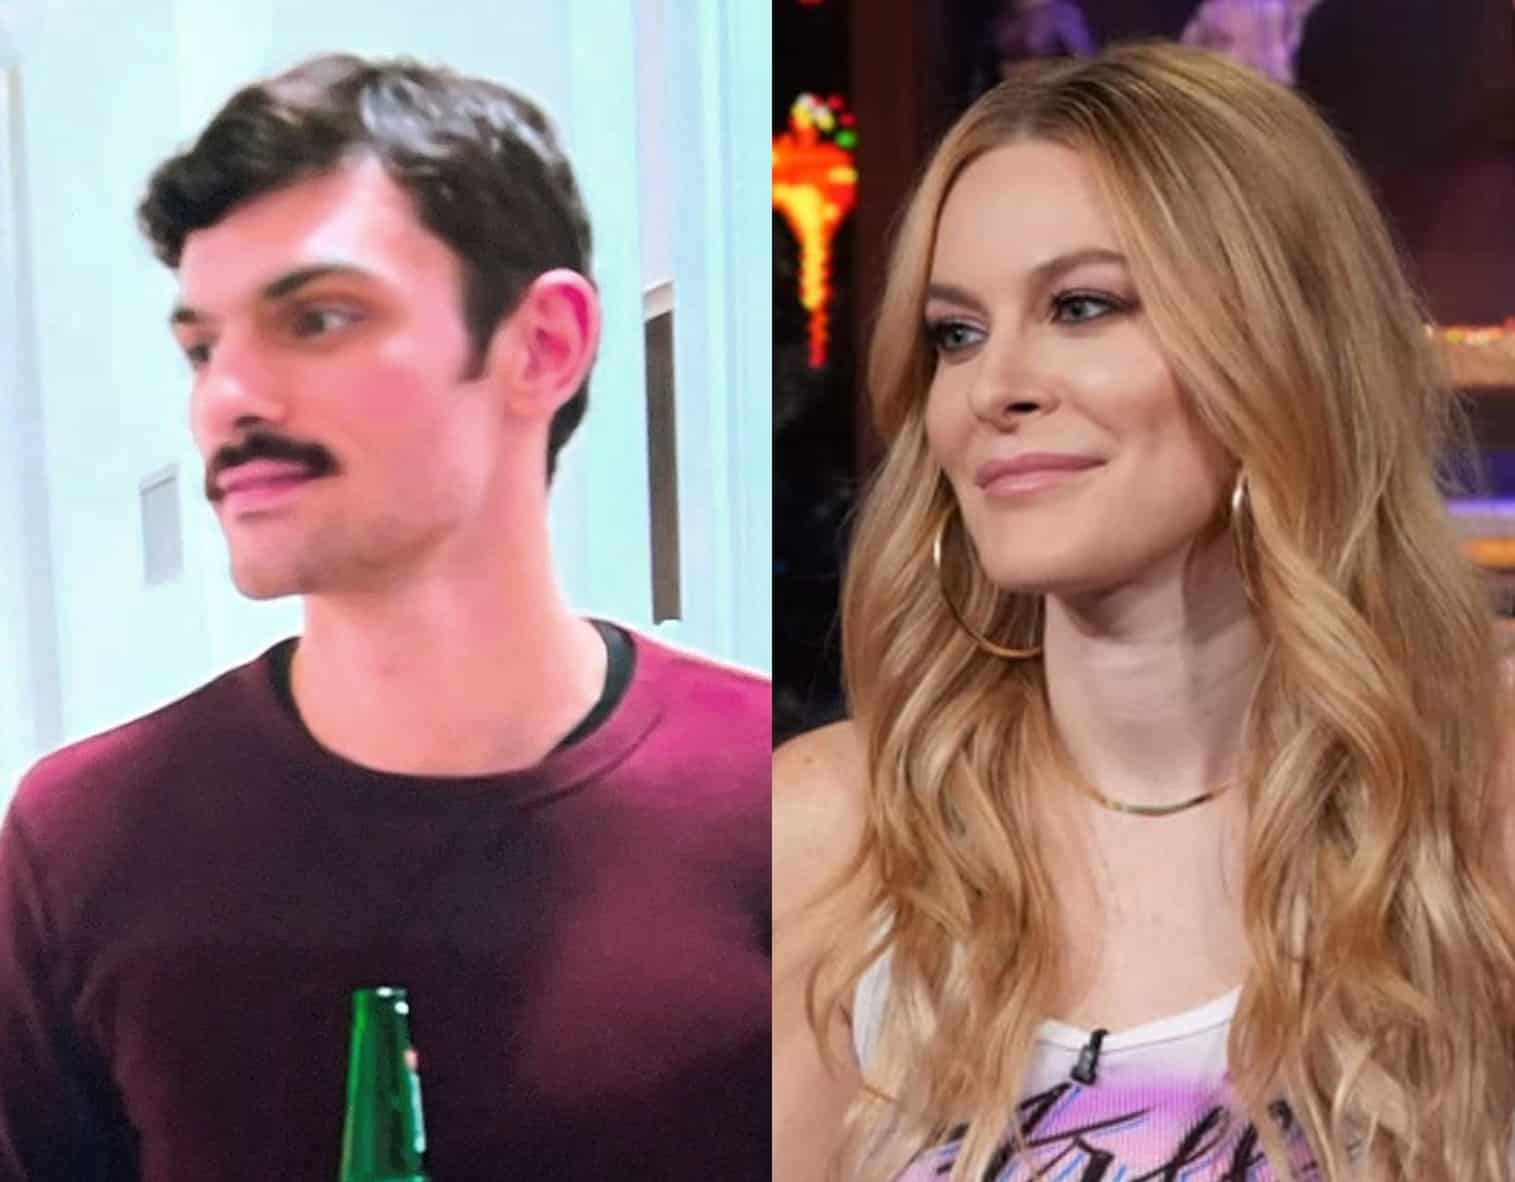 """RHONY Fans Go Wild Over Leah McSweeney's """"Hot"""" Brother Daniel McSweeney, See His Modeling Photos Plus Find Out if He's Single!"""